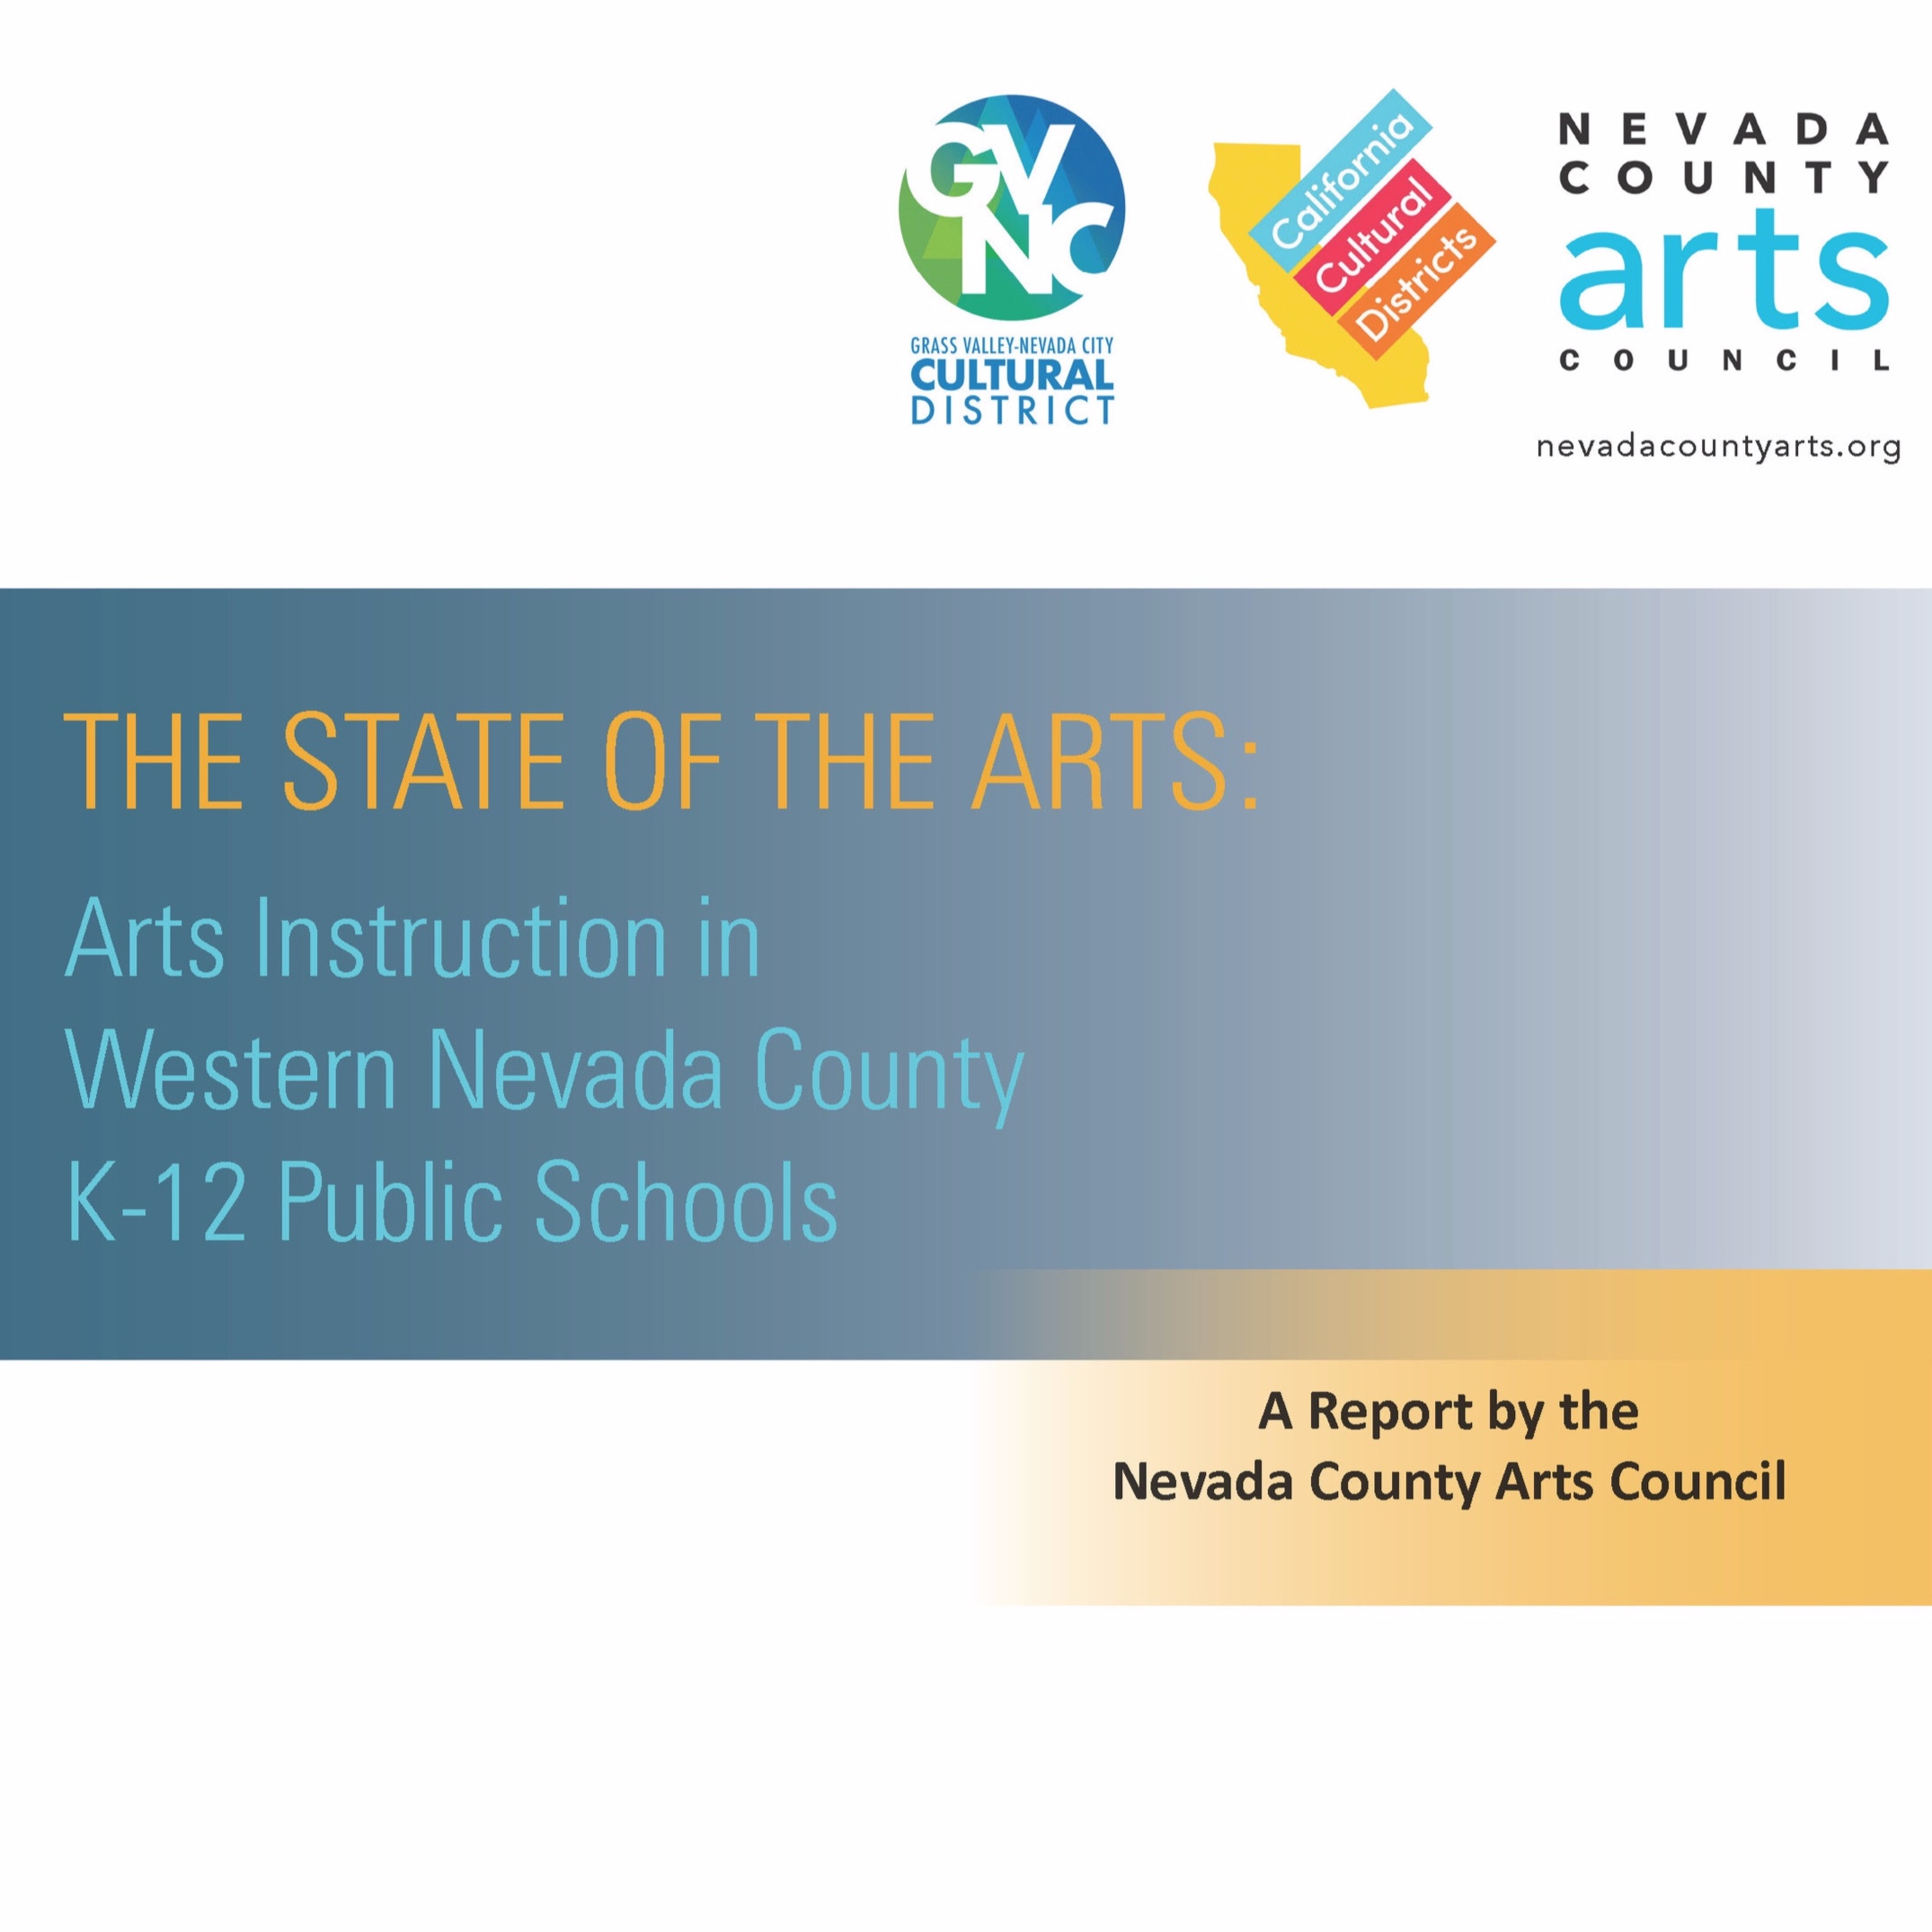 The State of the Arts: Arts Instruction in Western Nevada County K-12 Public Schools